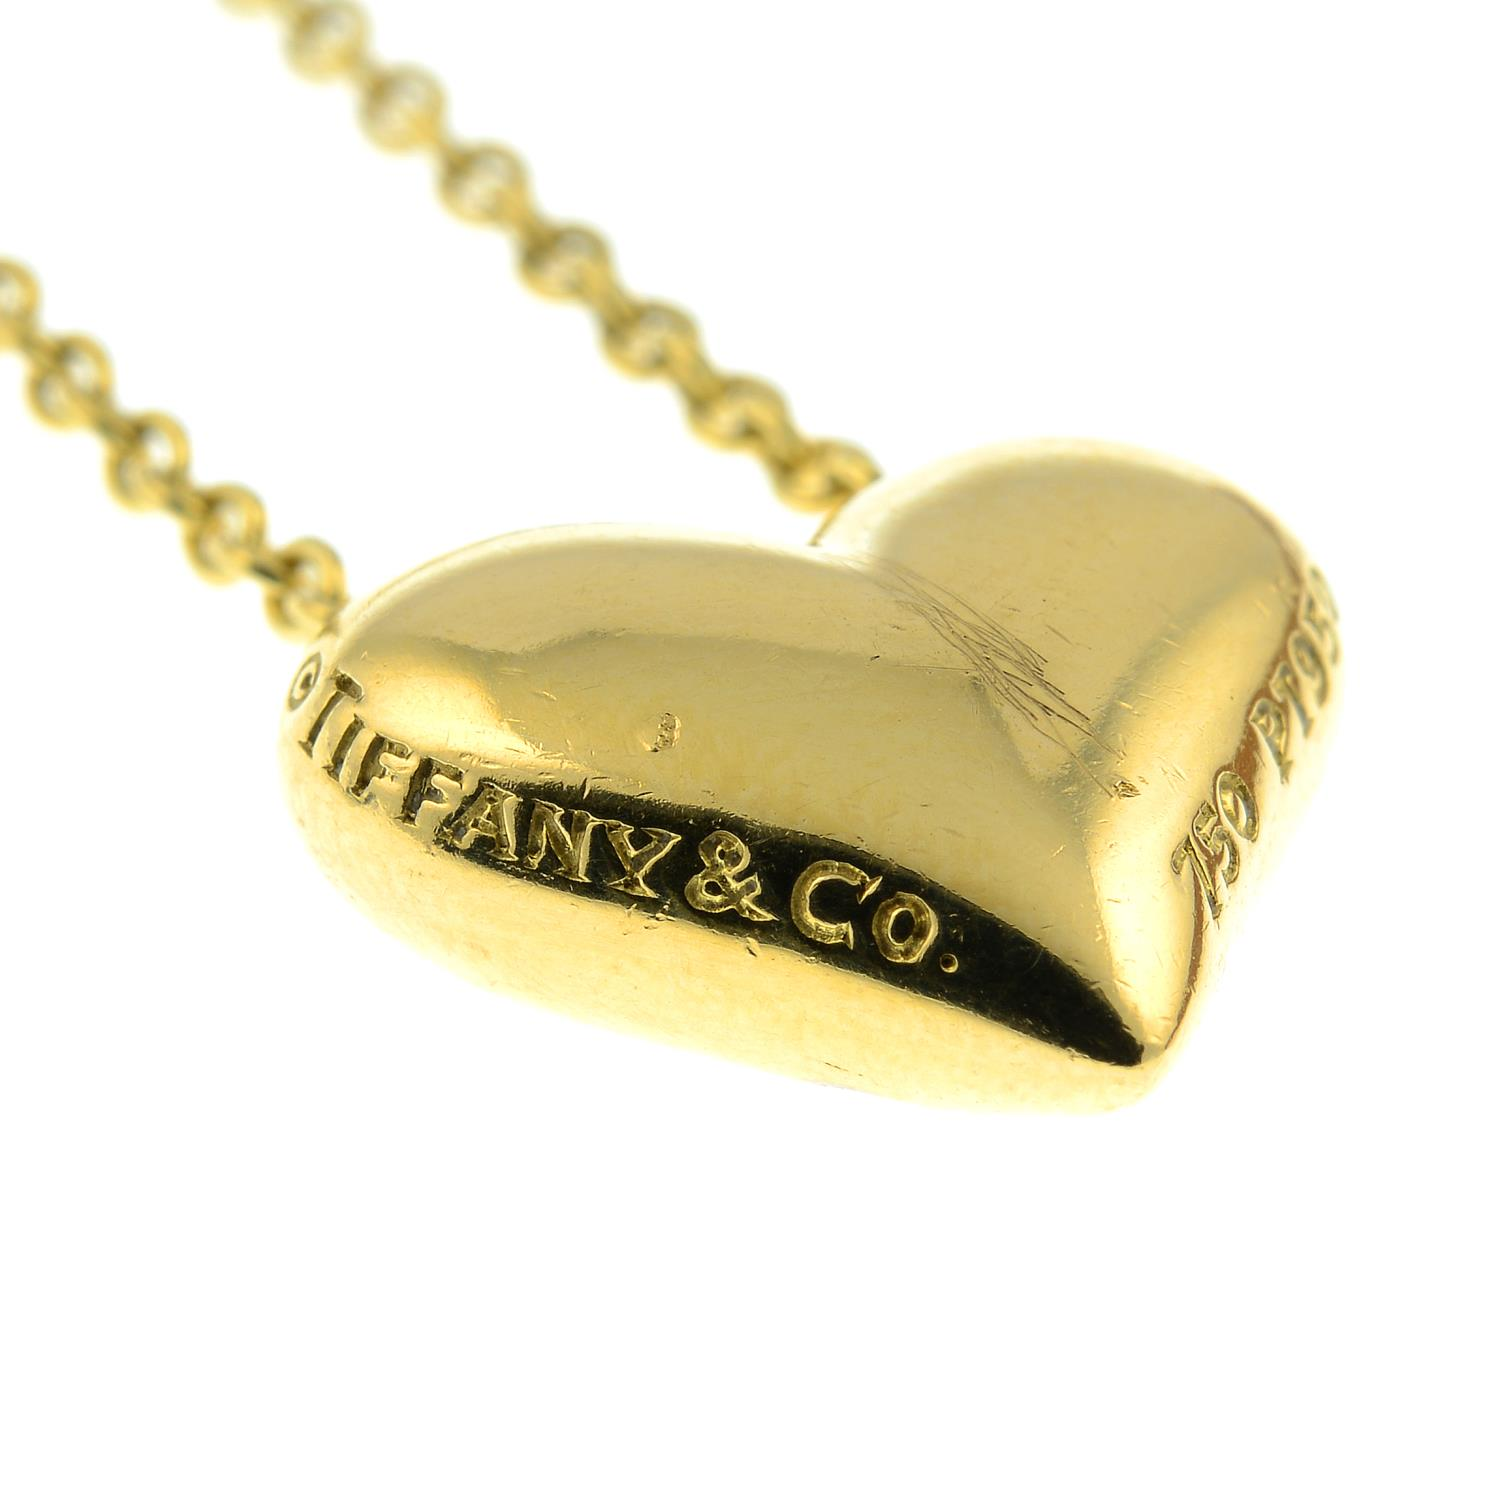 A diamond 'Etoile' heart pendant, on chain, by Tiffany & Co. - Image 4 of 6